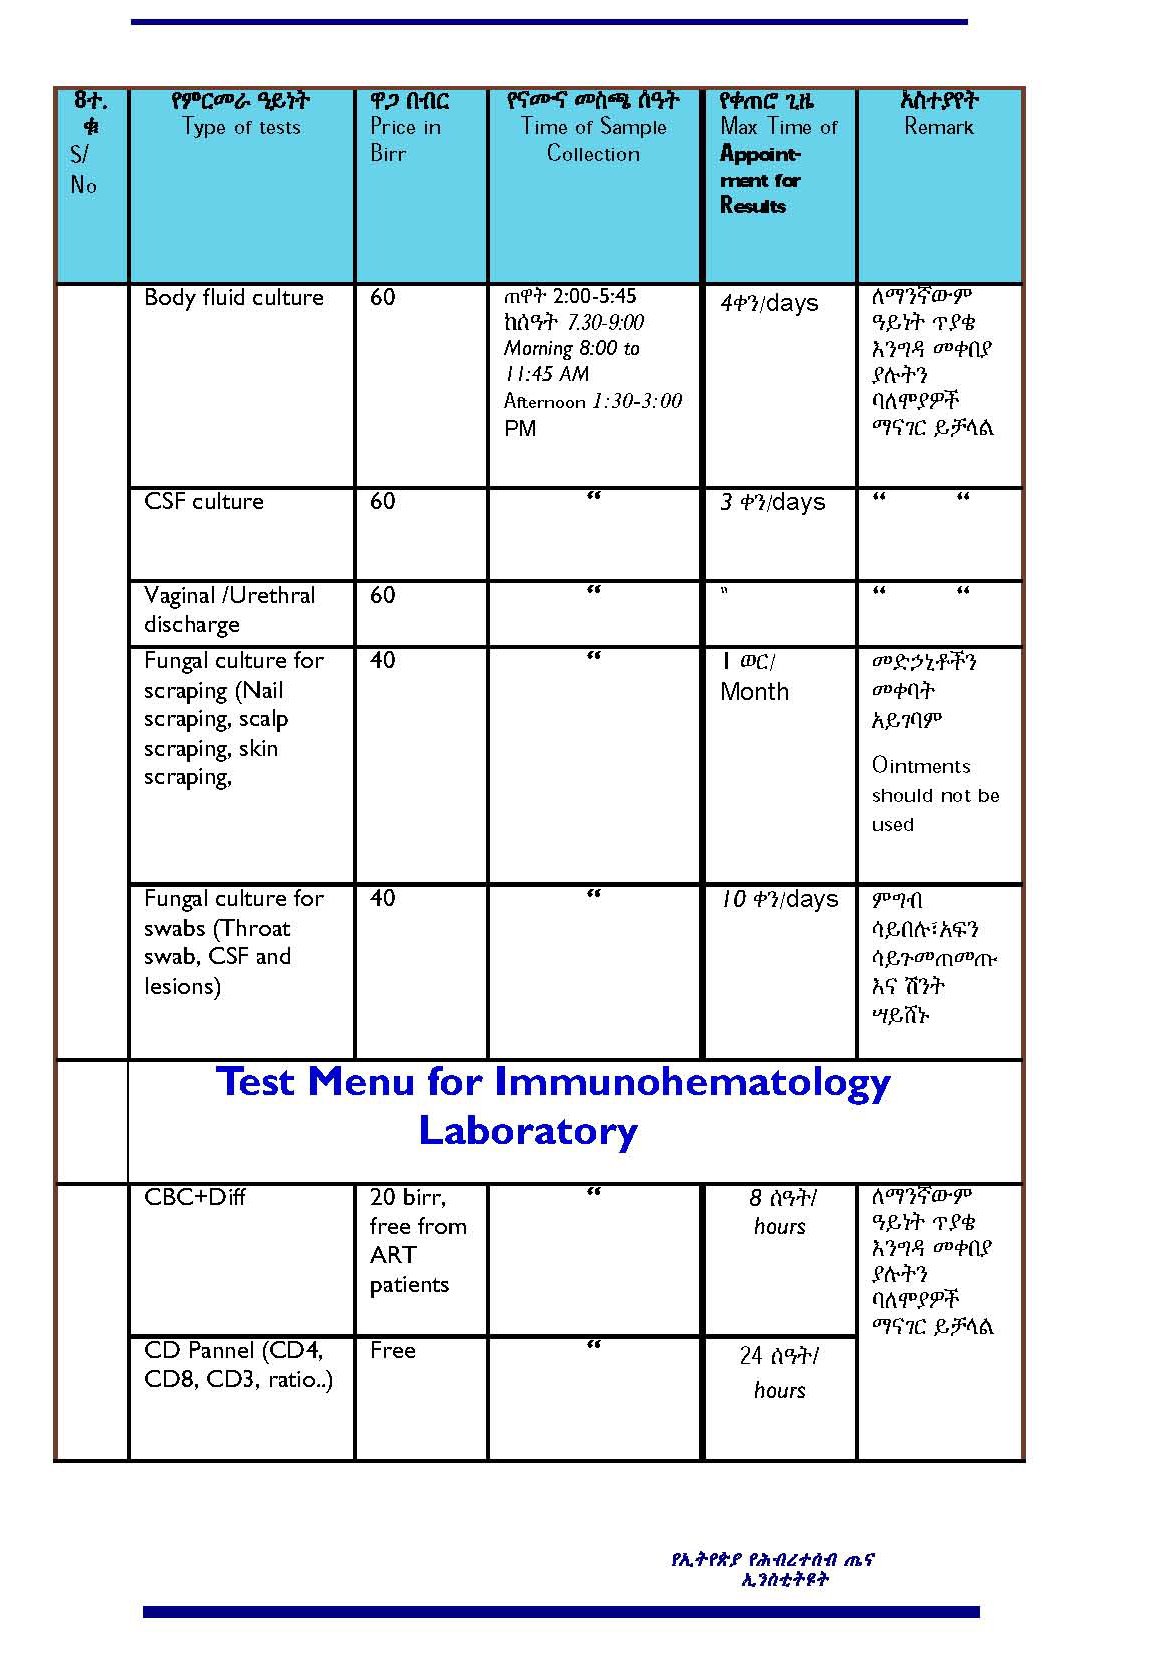 Back Up, National TB Reference and Immunohematology Laboratories Page 2